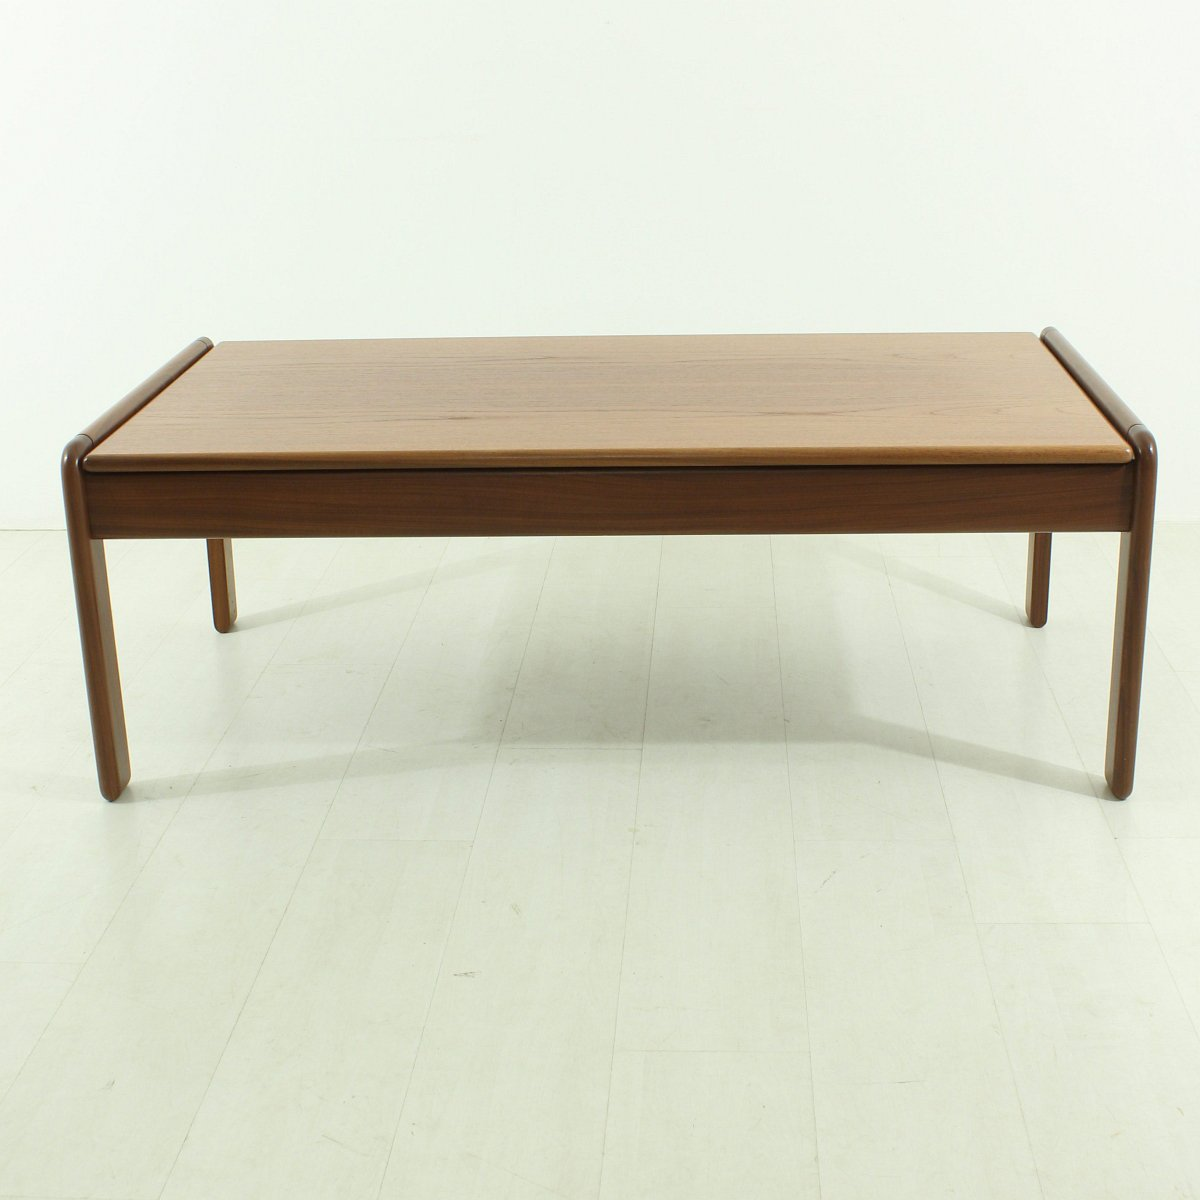 Scandinavian teak coffee table 1960s for sale at pamono for Coffee table 80 x 50